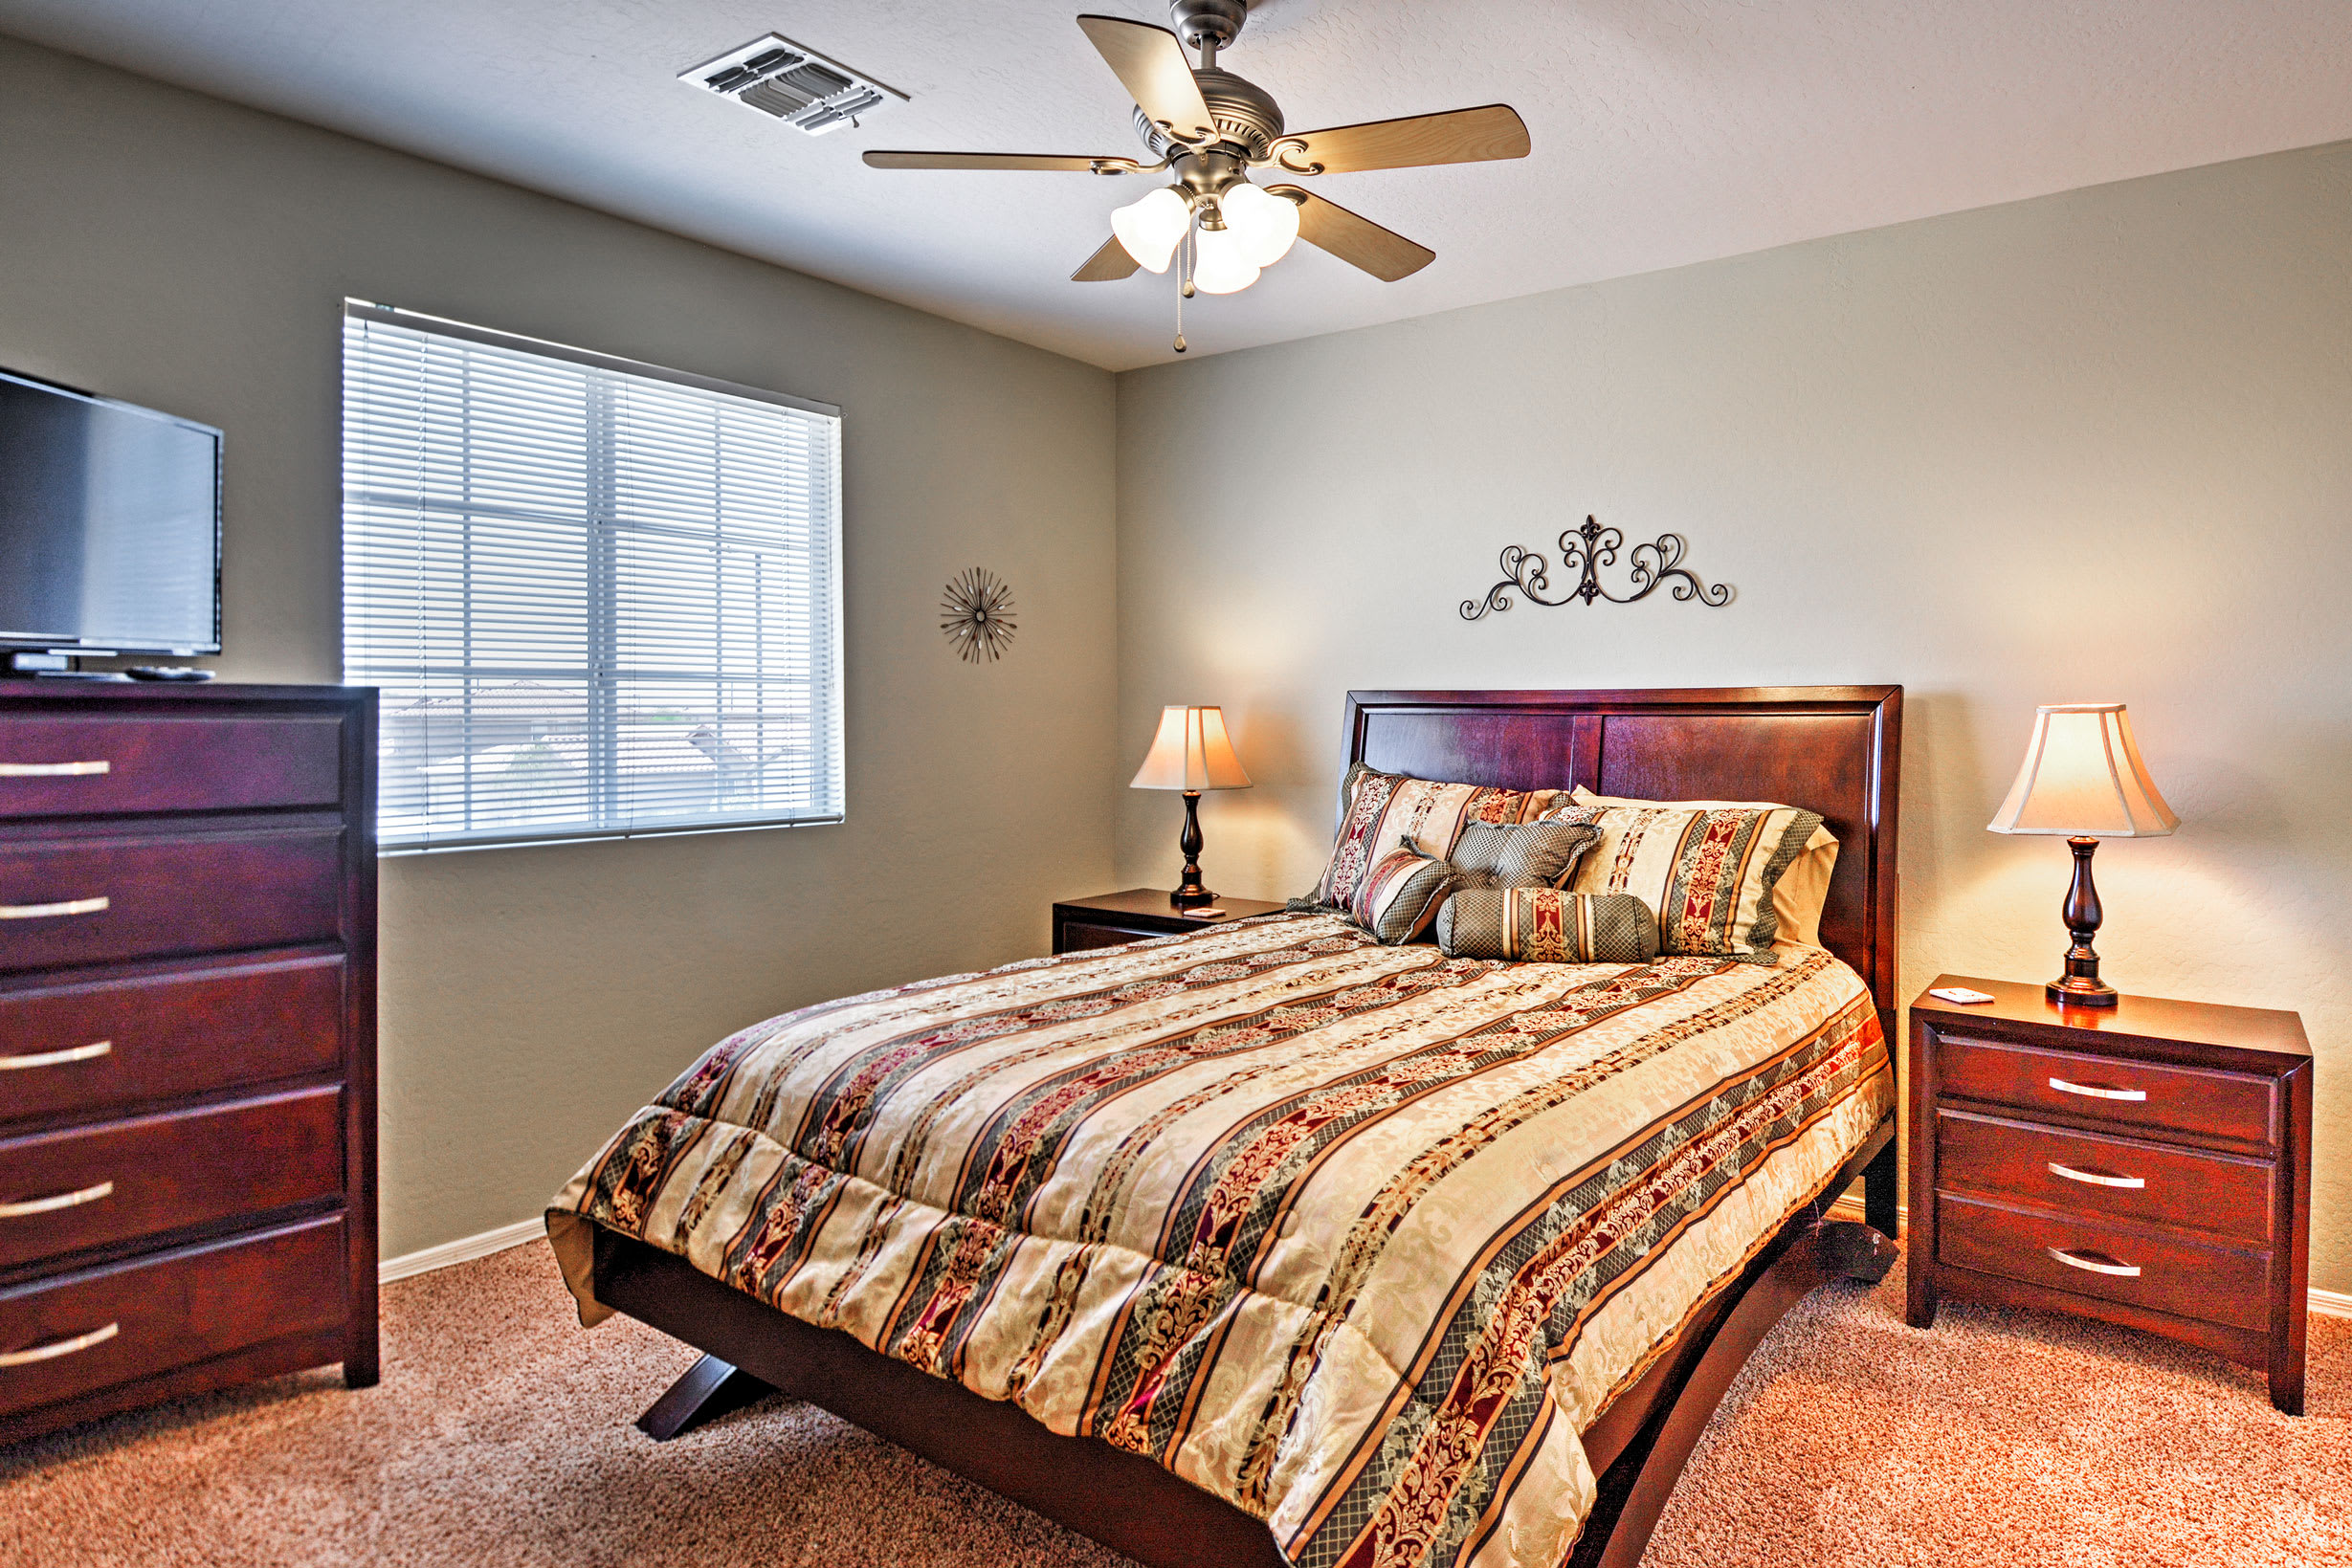 Cuddle up in this cozy queen-sized bed in the second bedroom.